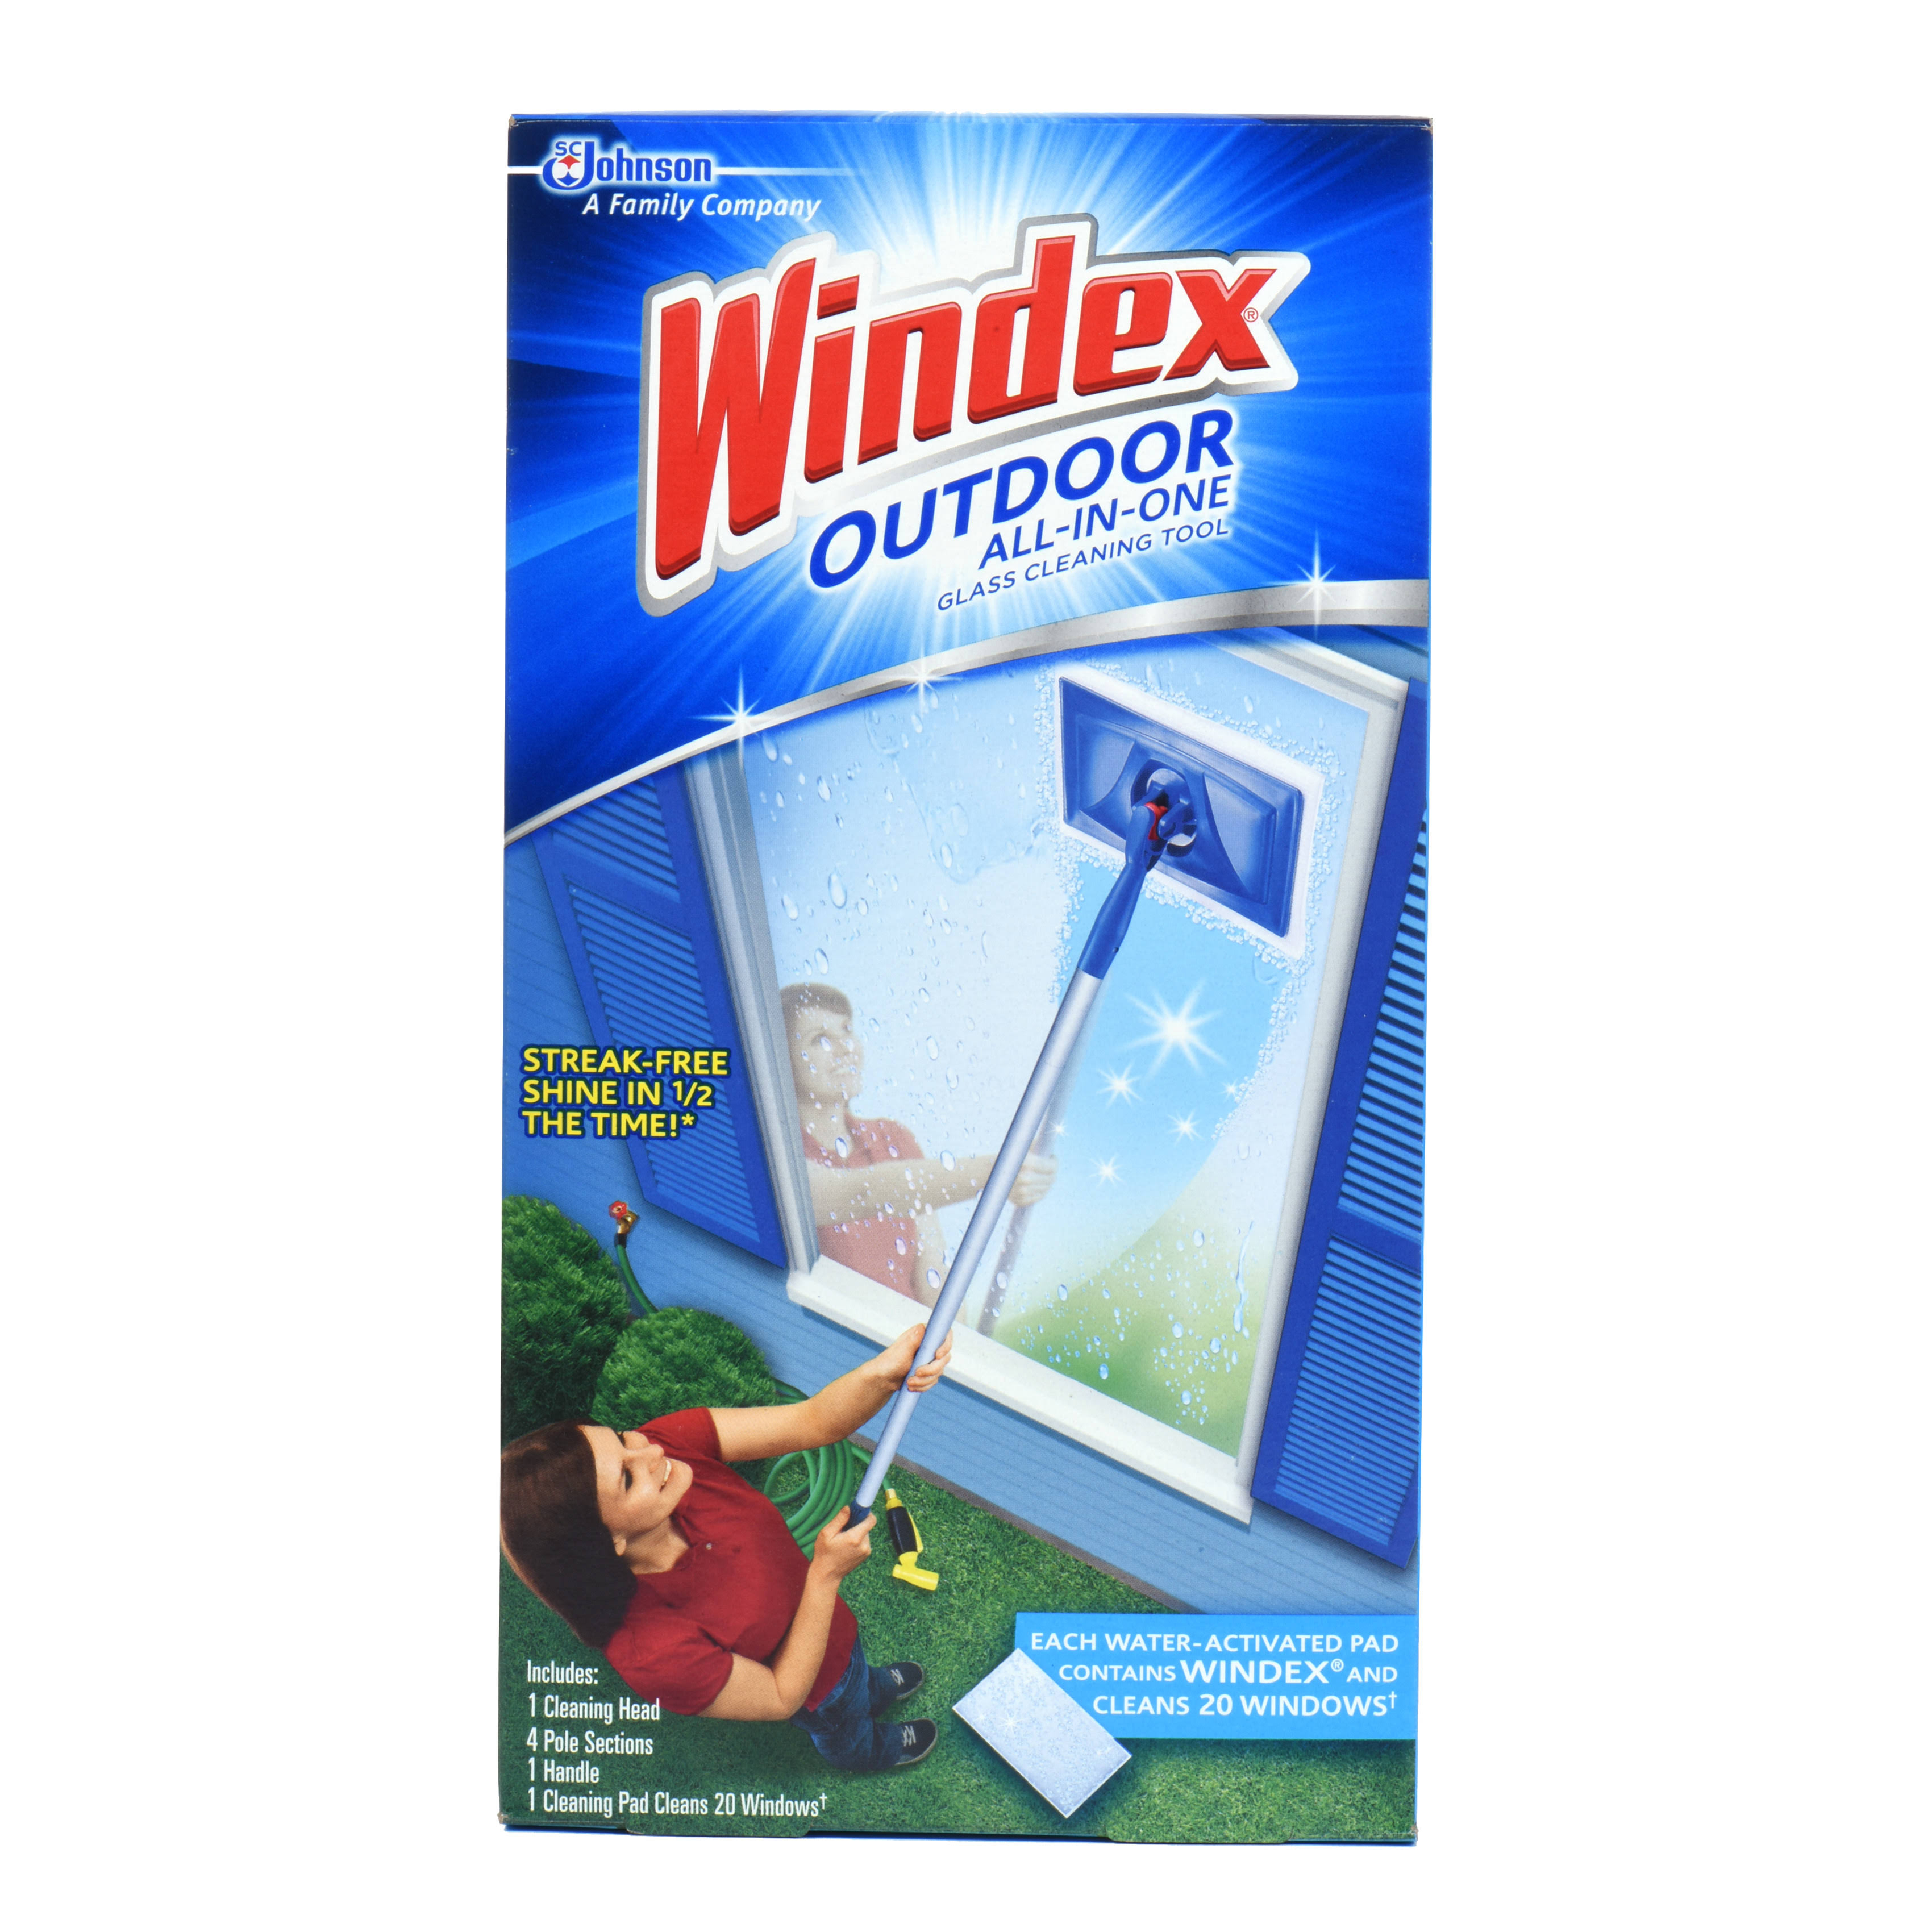 Windex Outdoor All-In-One Glass Cleaning Tool Kit